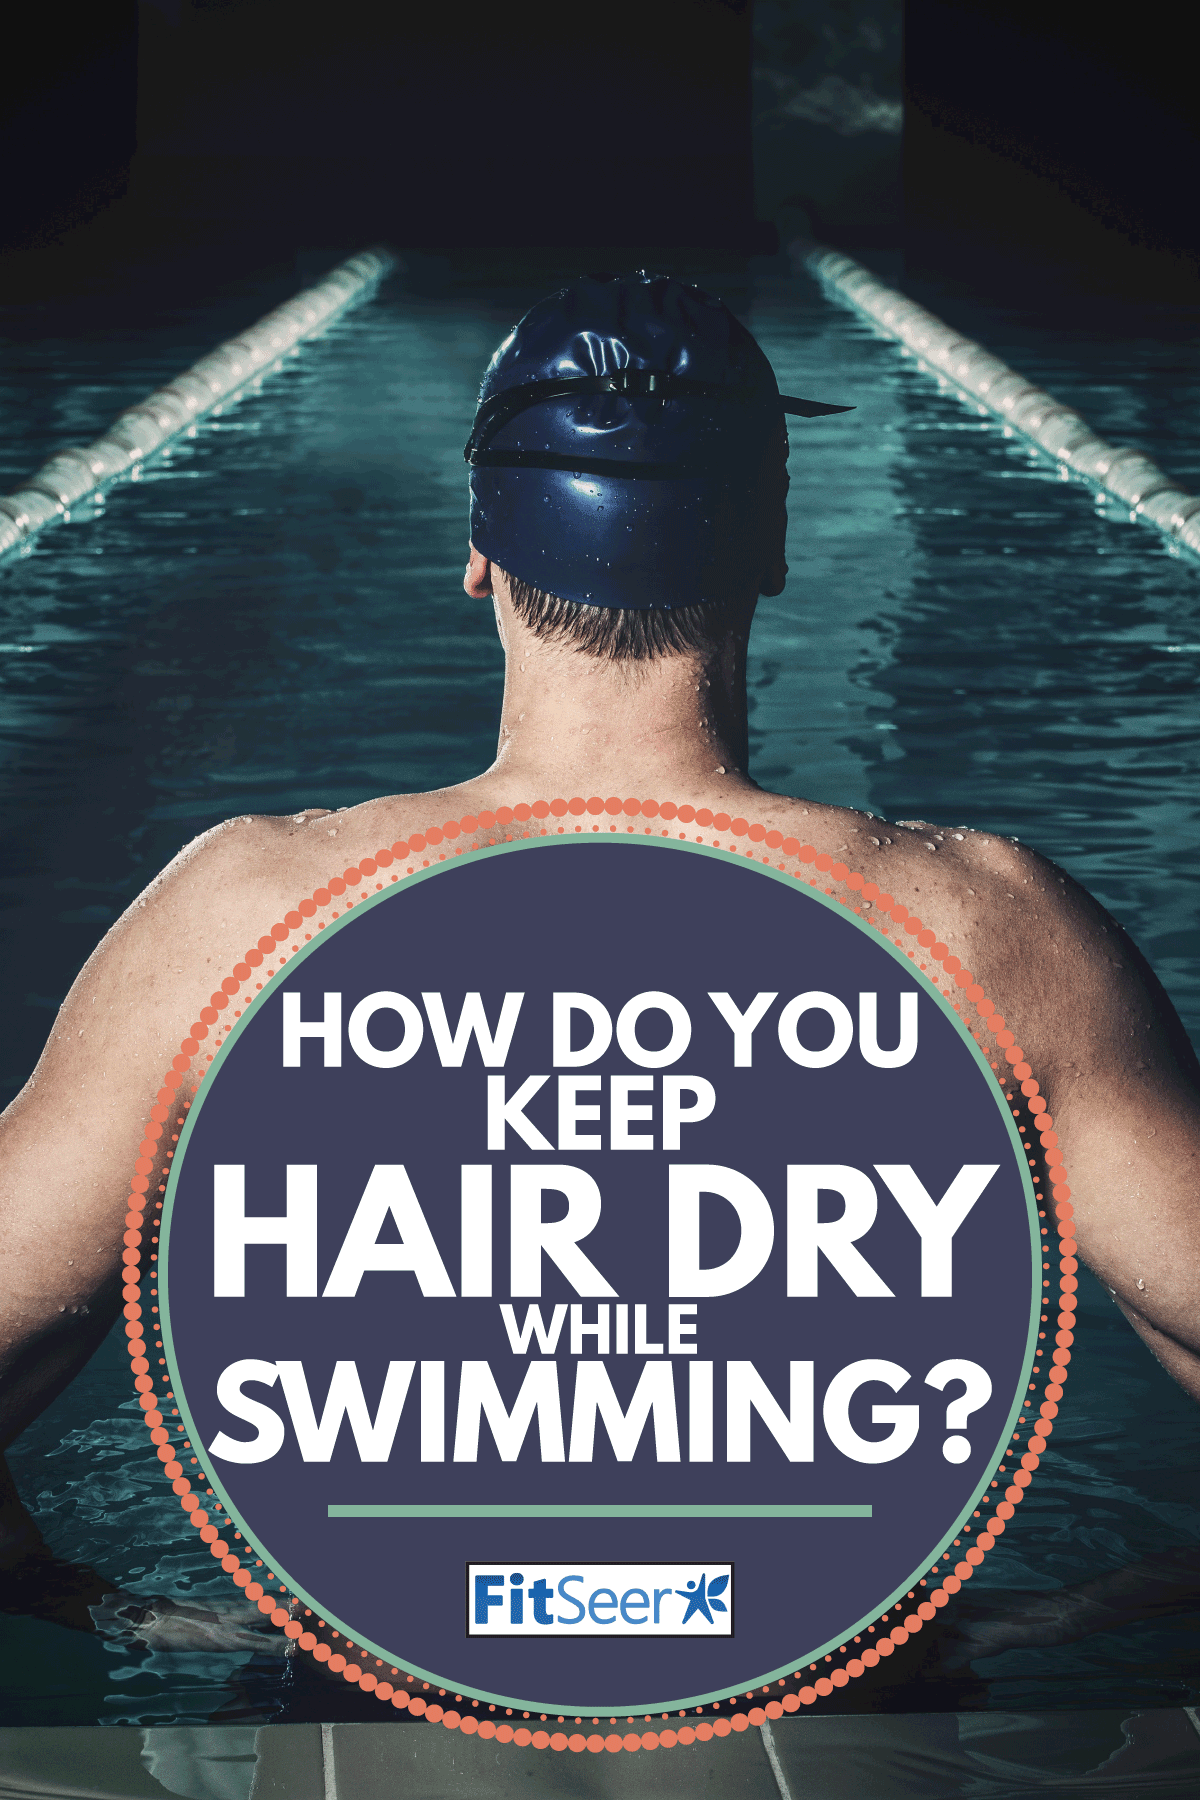 Muscular swimmer in a swimming pool. How Do You Keep Hair Dry While Swimming